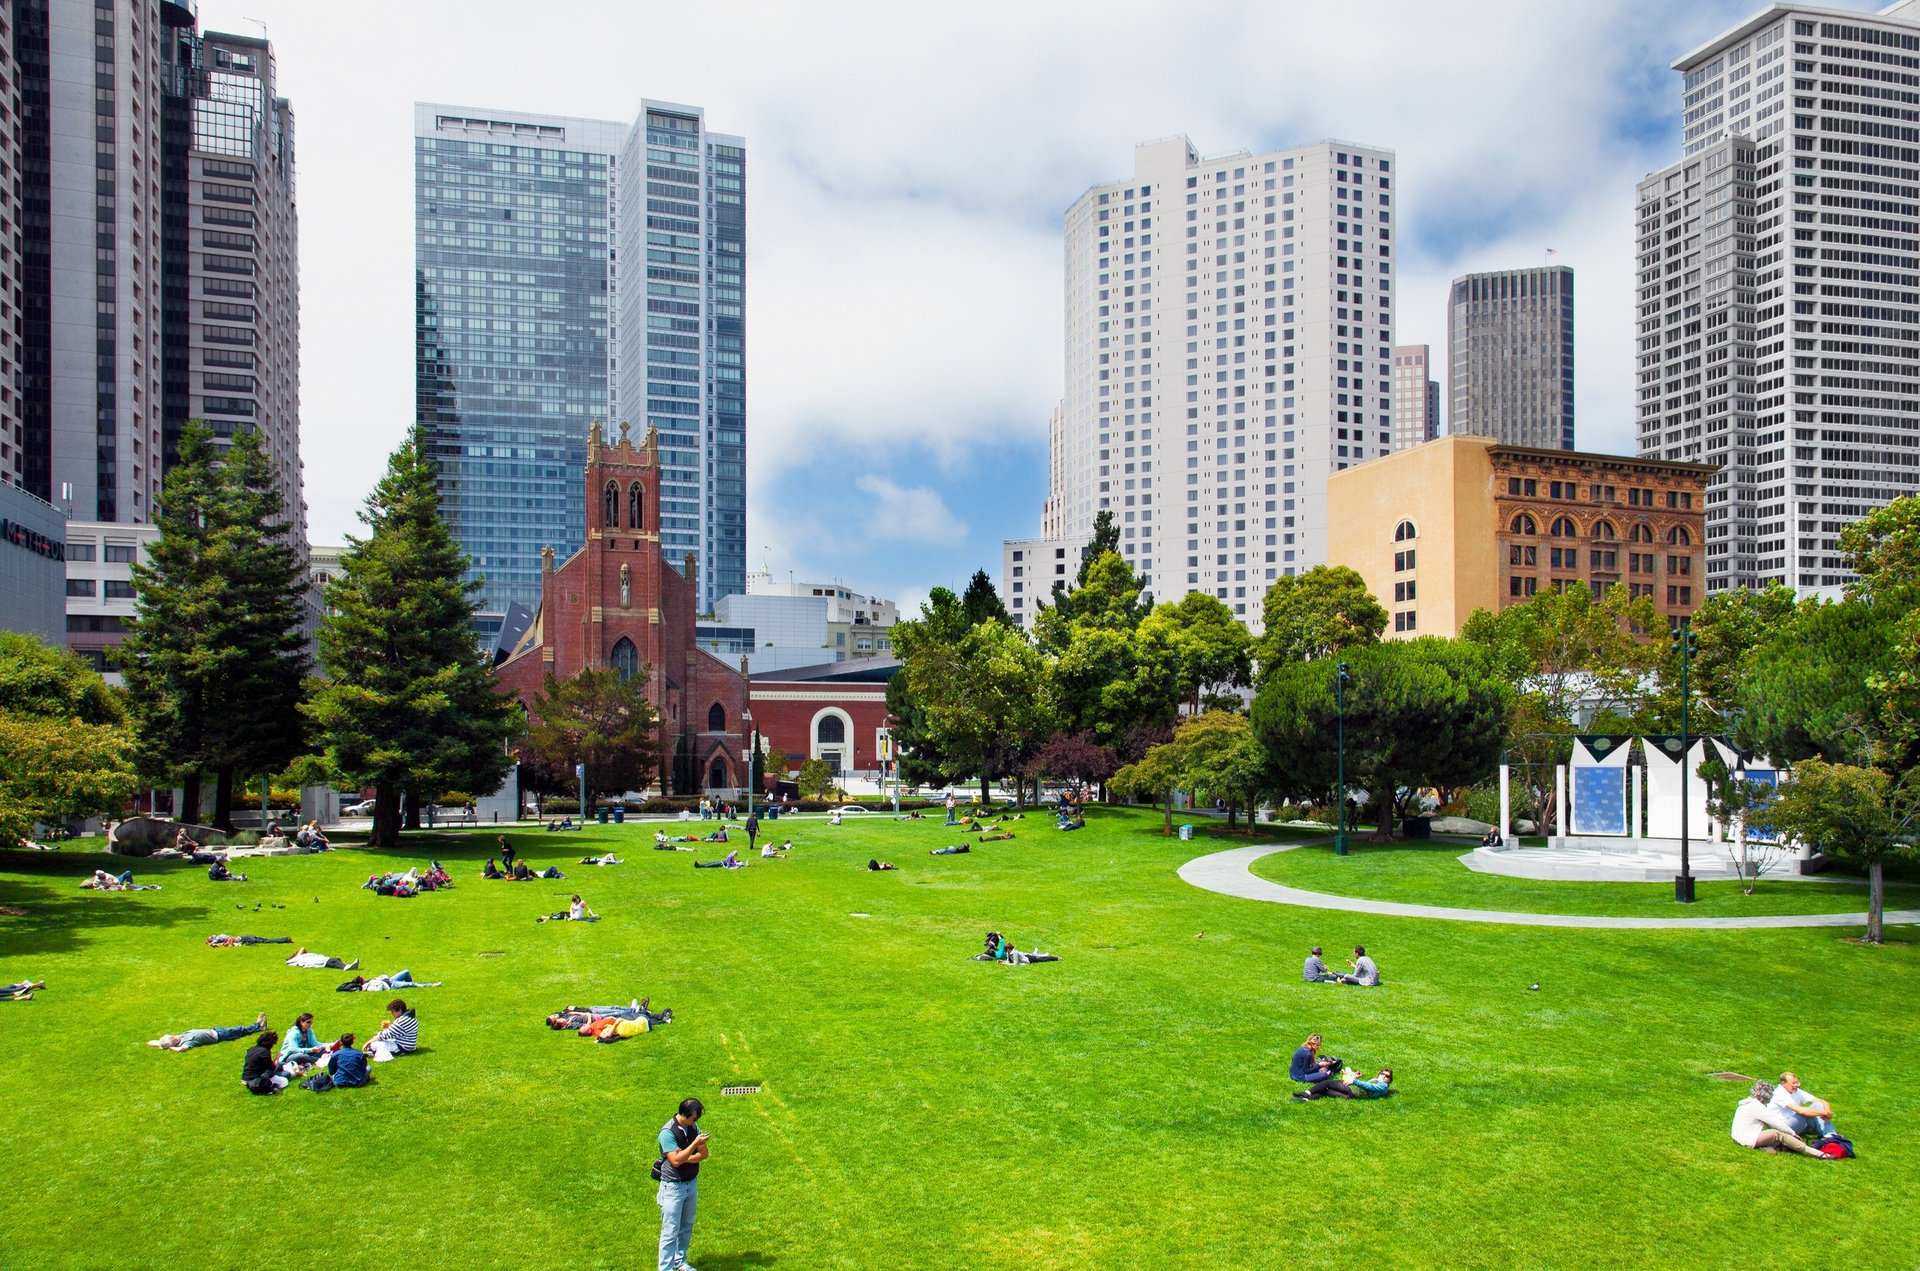 Open park area in San Francisco